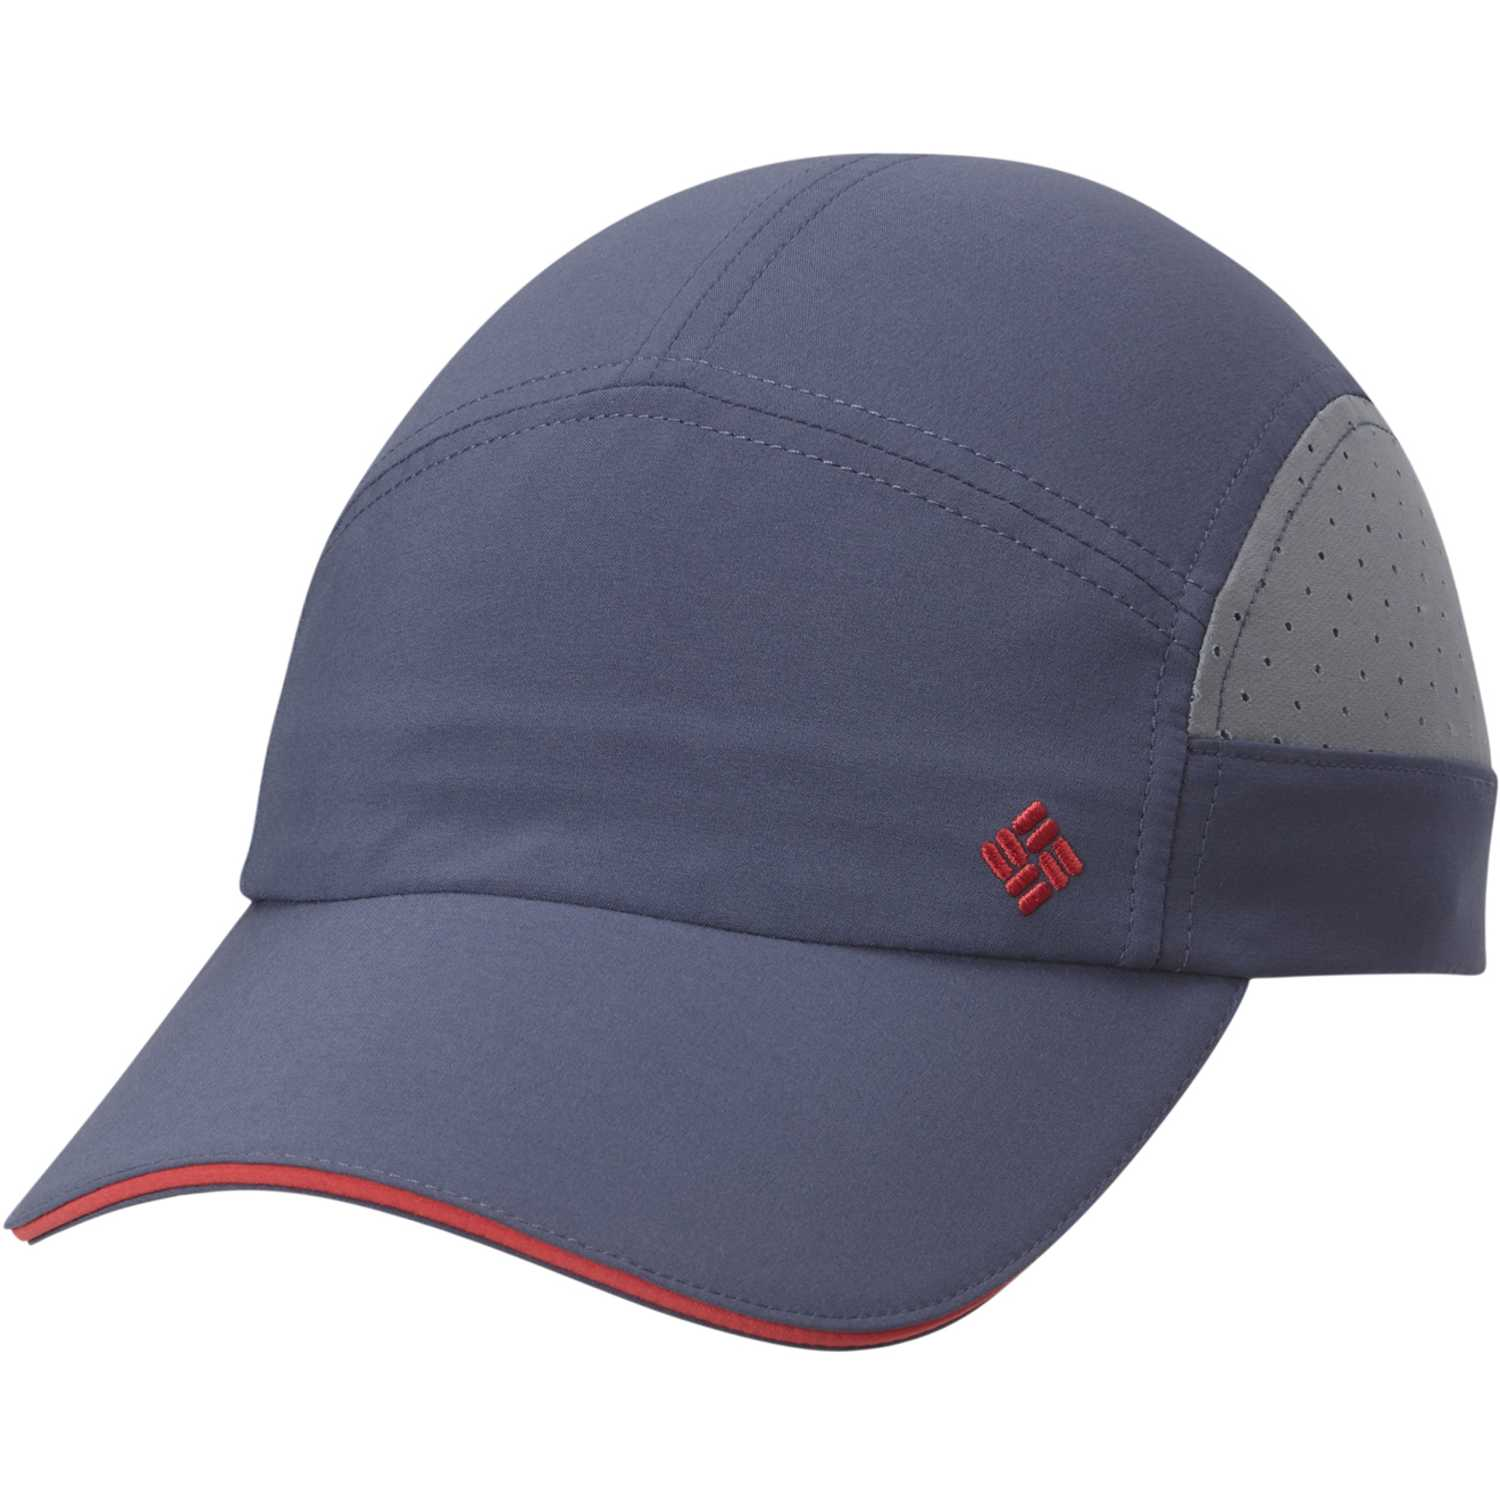 Gorro de Mujer Columbia Navy / Gris bryce canyon hat